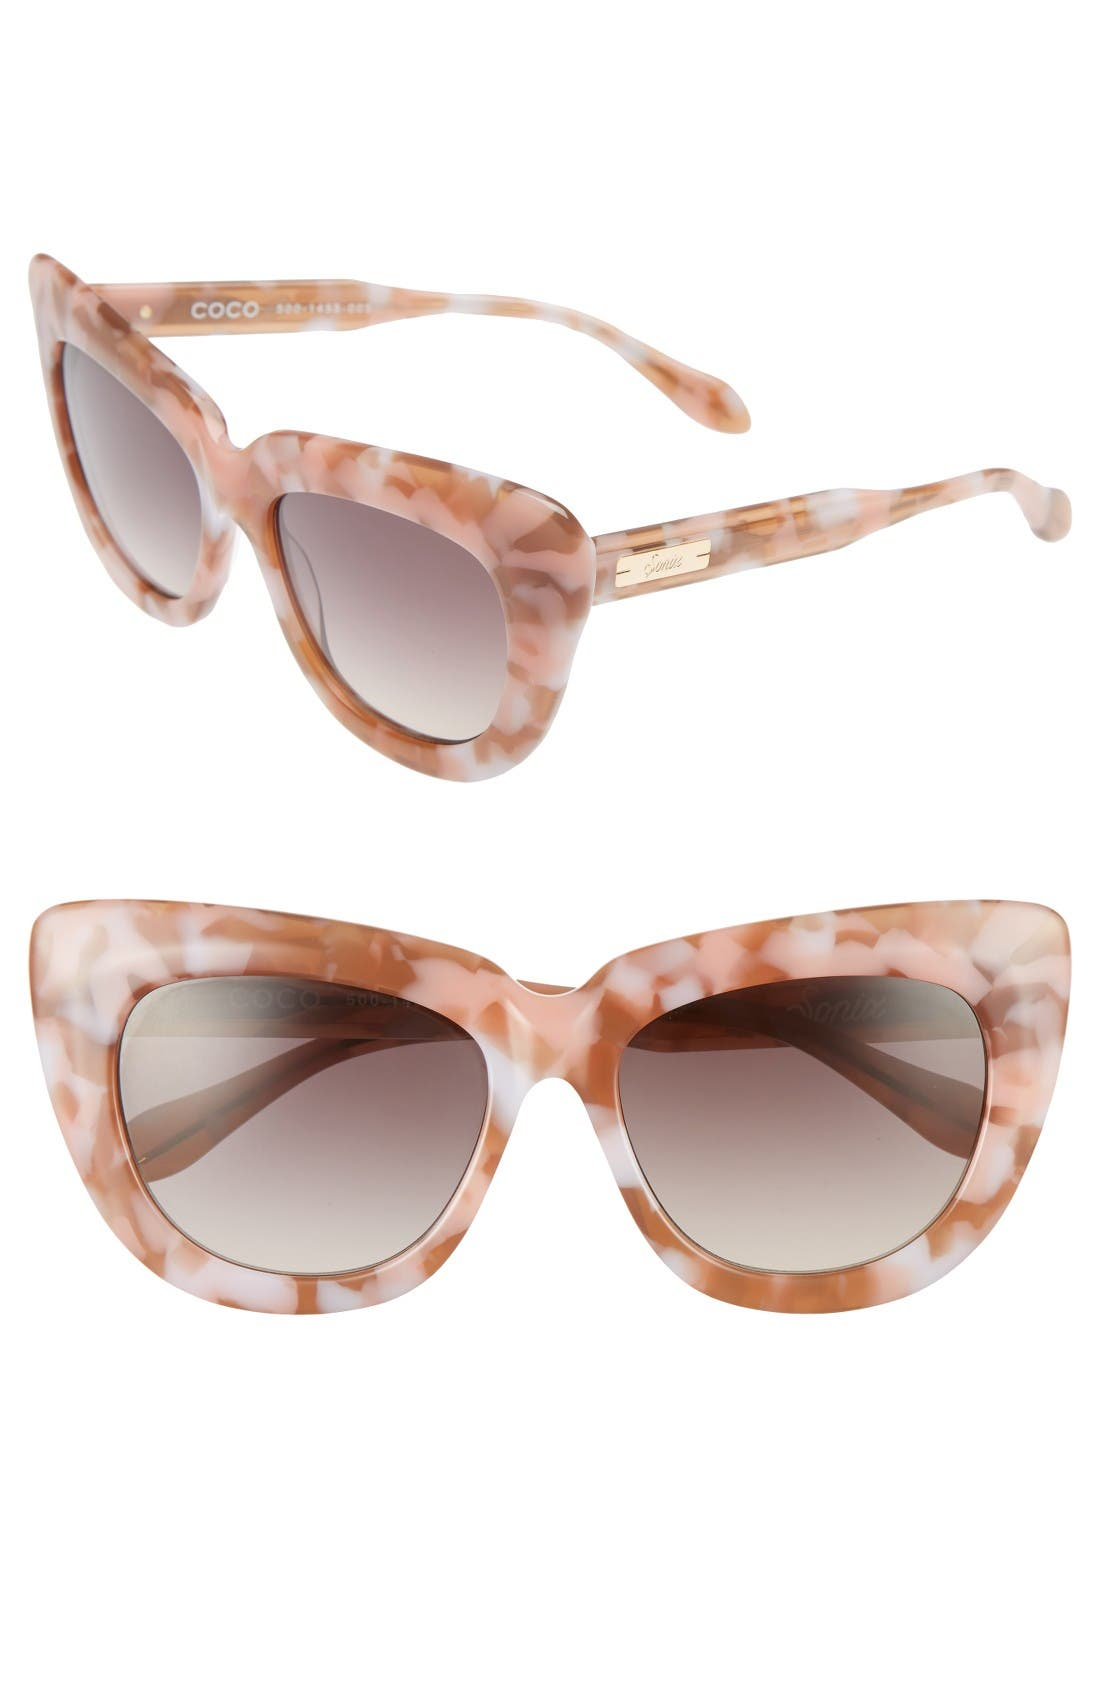 Sonix Coco 55mm Cat Eye Sunglasses